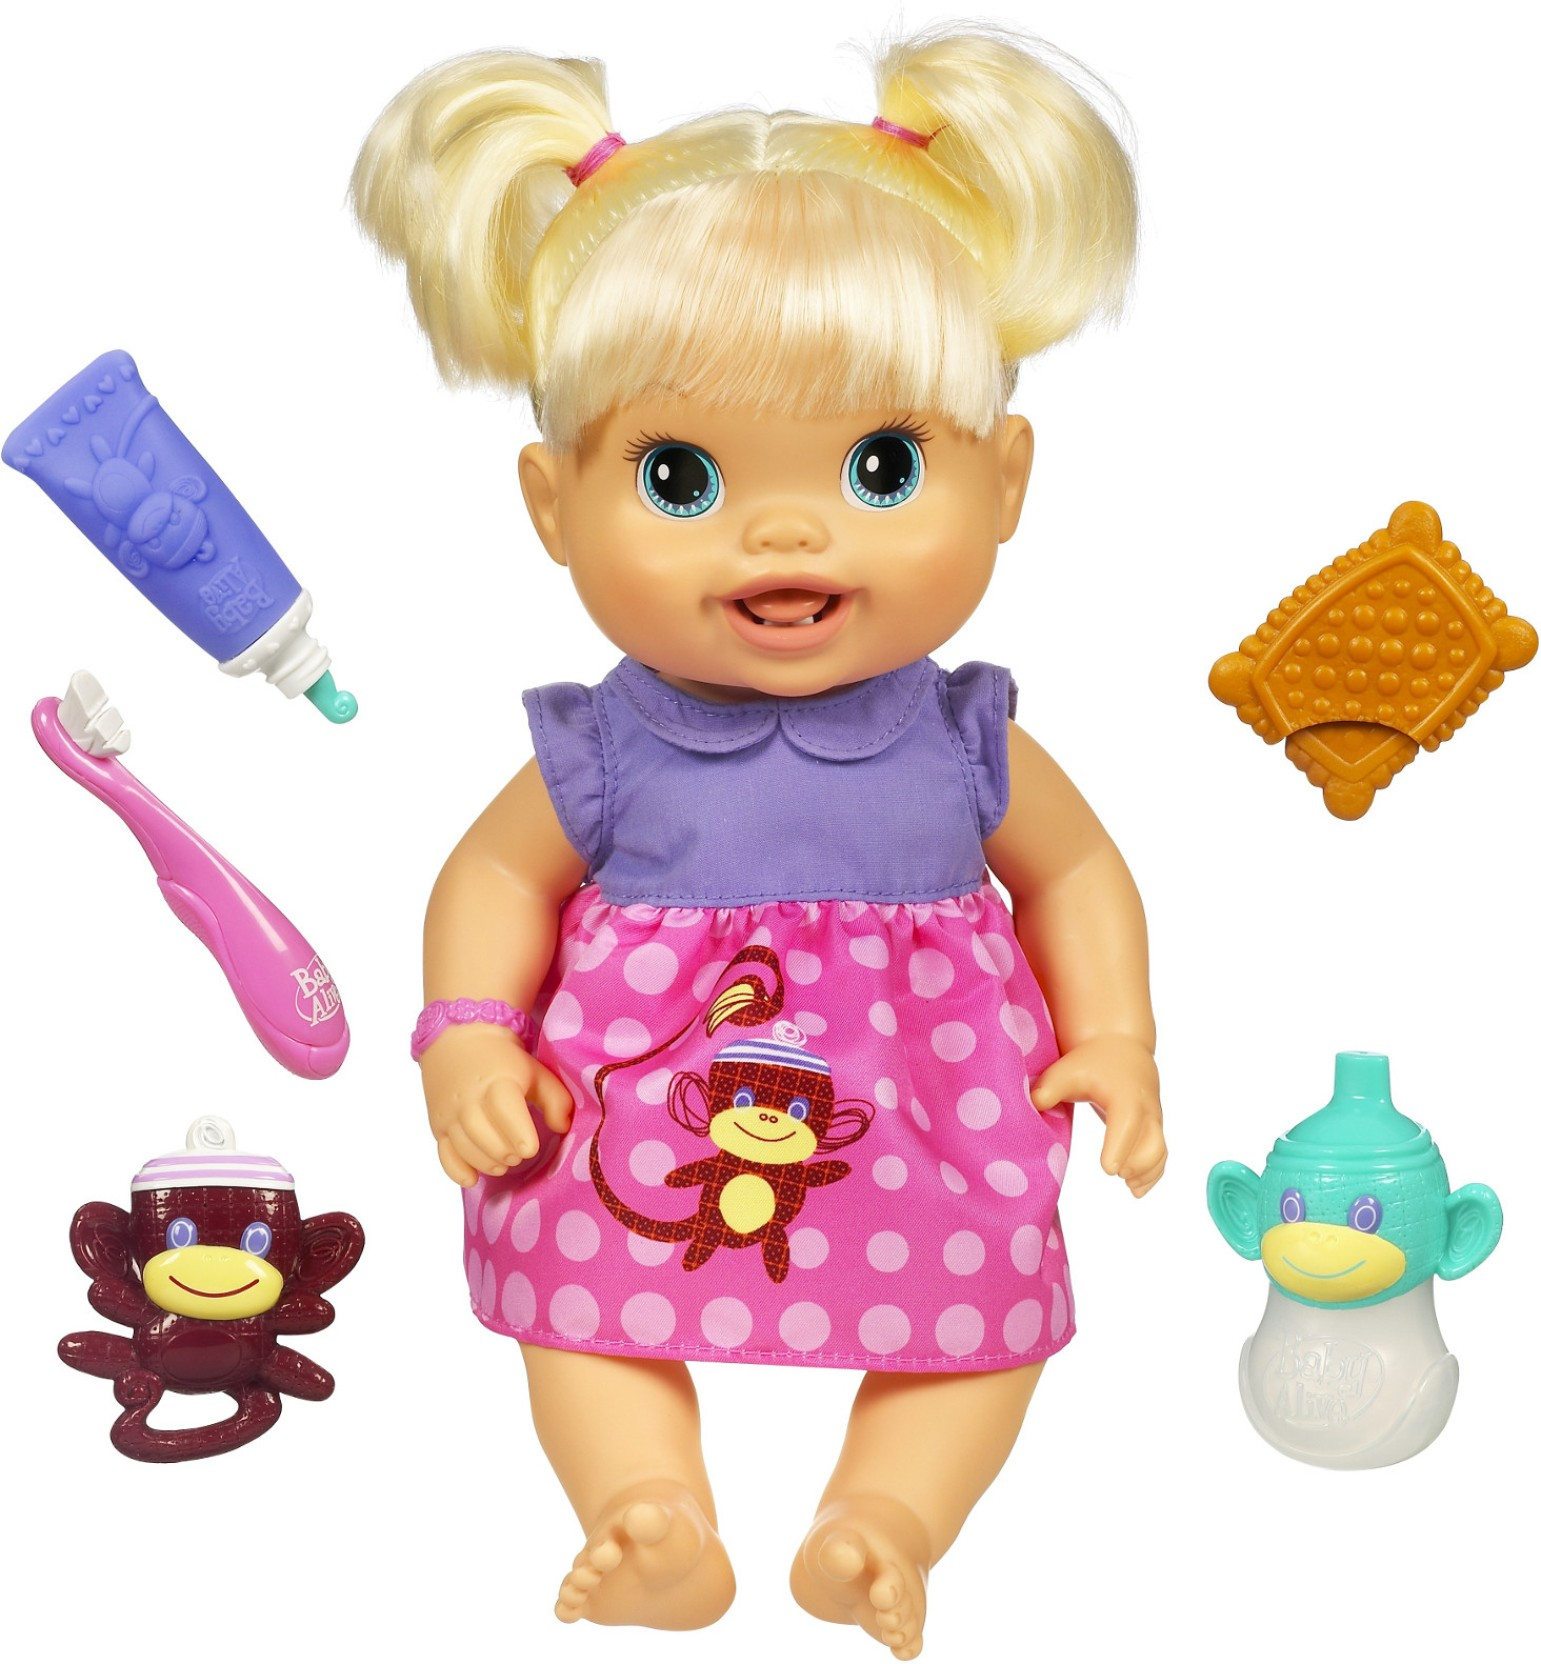 Baby Alive Doll Toy Review Of The Baby's New Teeth Toy ...  |Baby Alive New Teeth